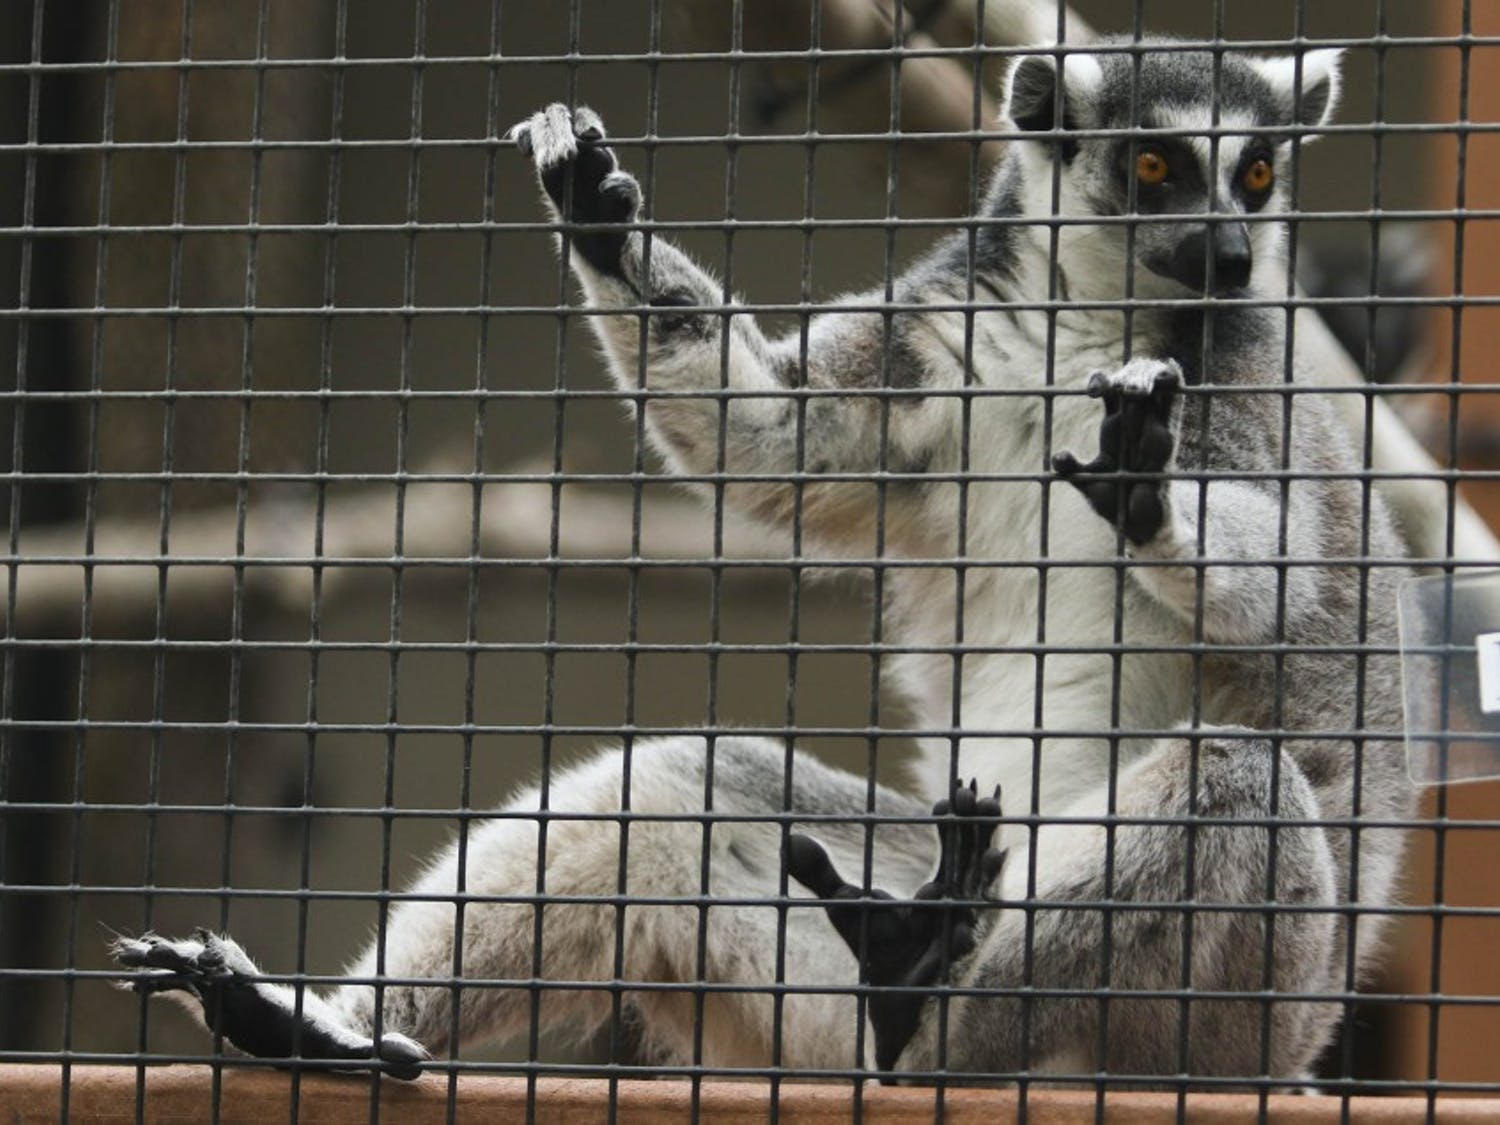 Onyx, a ring-tailed lemur, looks out of his cage during Lemurpalooza at Duke Lemur Center in Durham, NC, on Saturday.